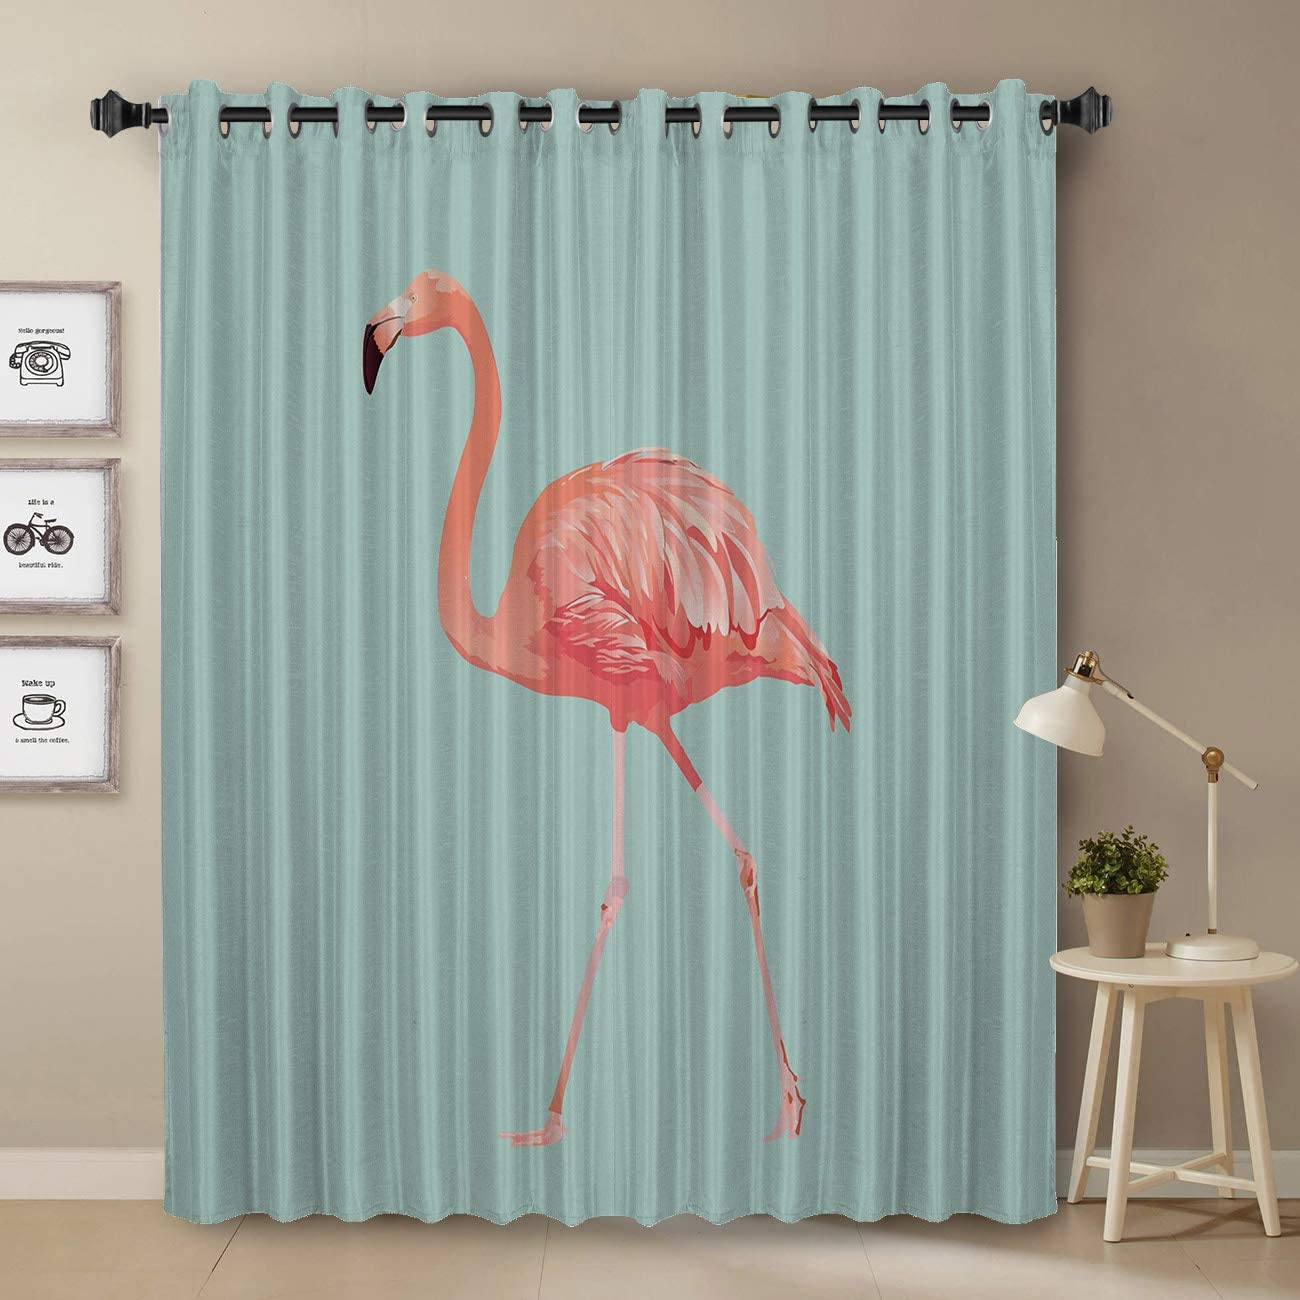 Blackout Window Curtains 52 W by 36 L Tropical Flamingo Print Grommet Thermal Insulated Room Darkening Curtains for Bedroom